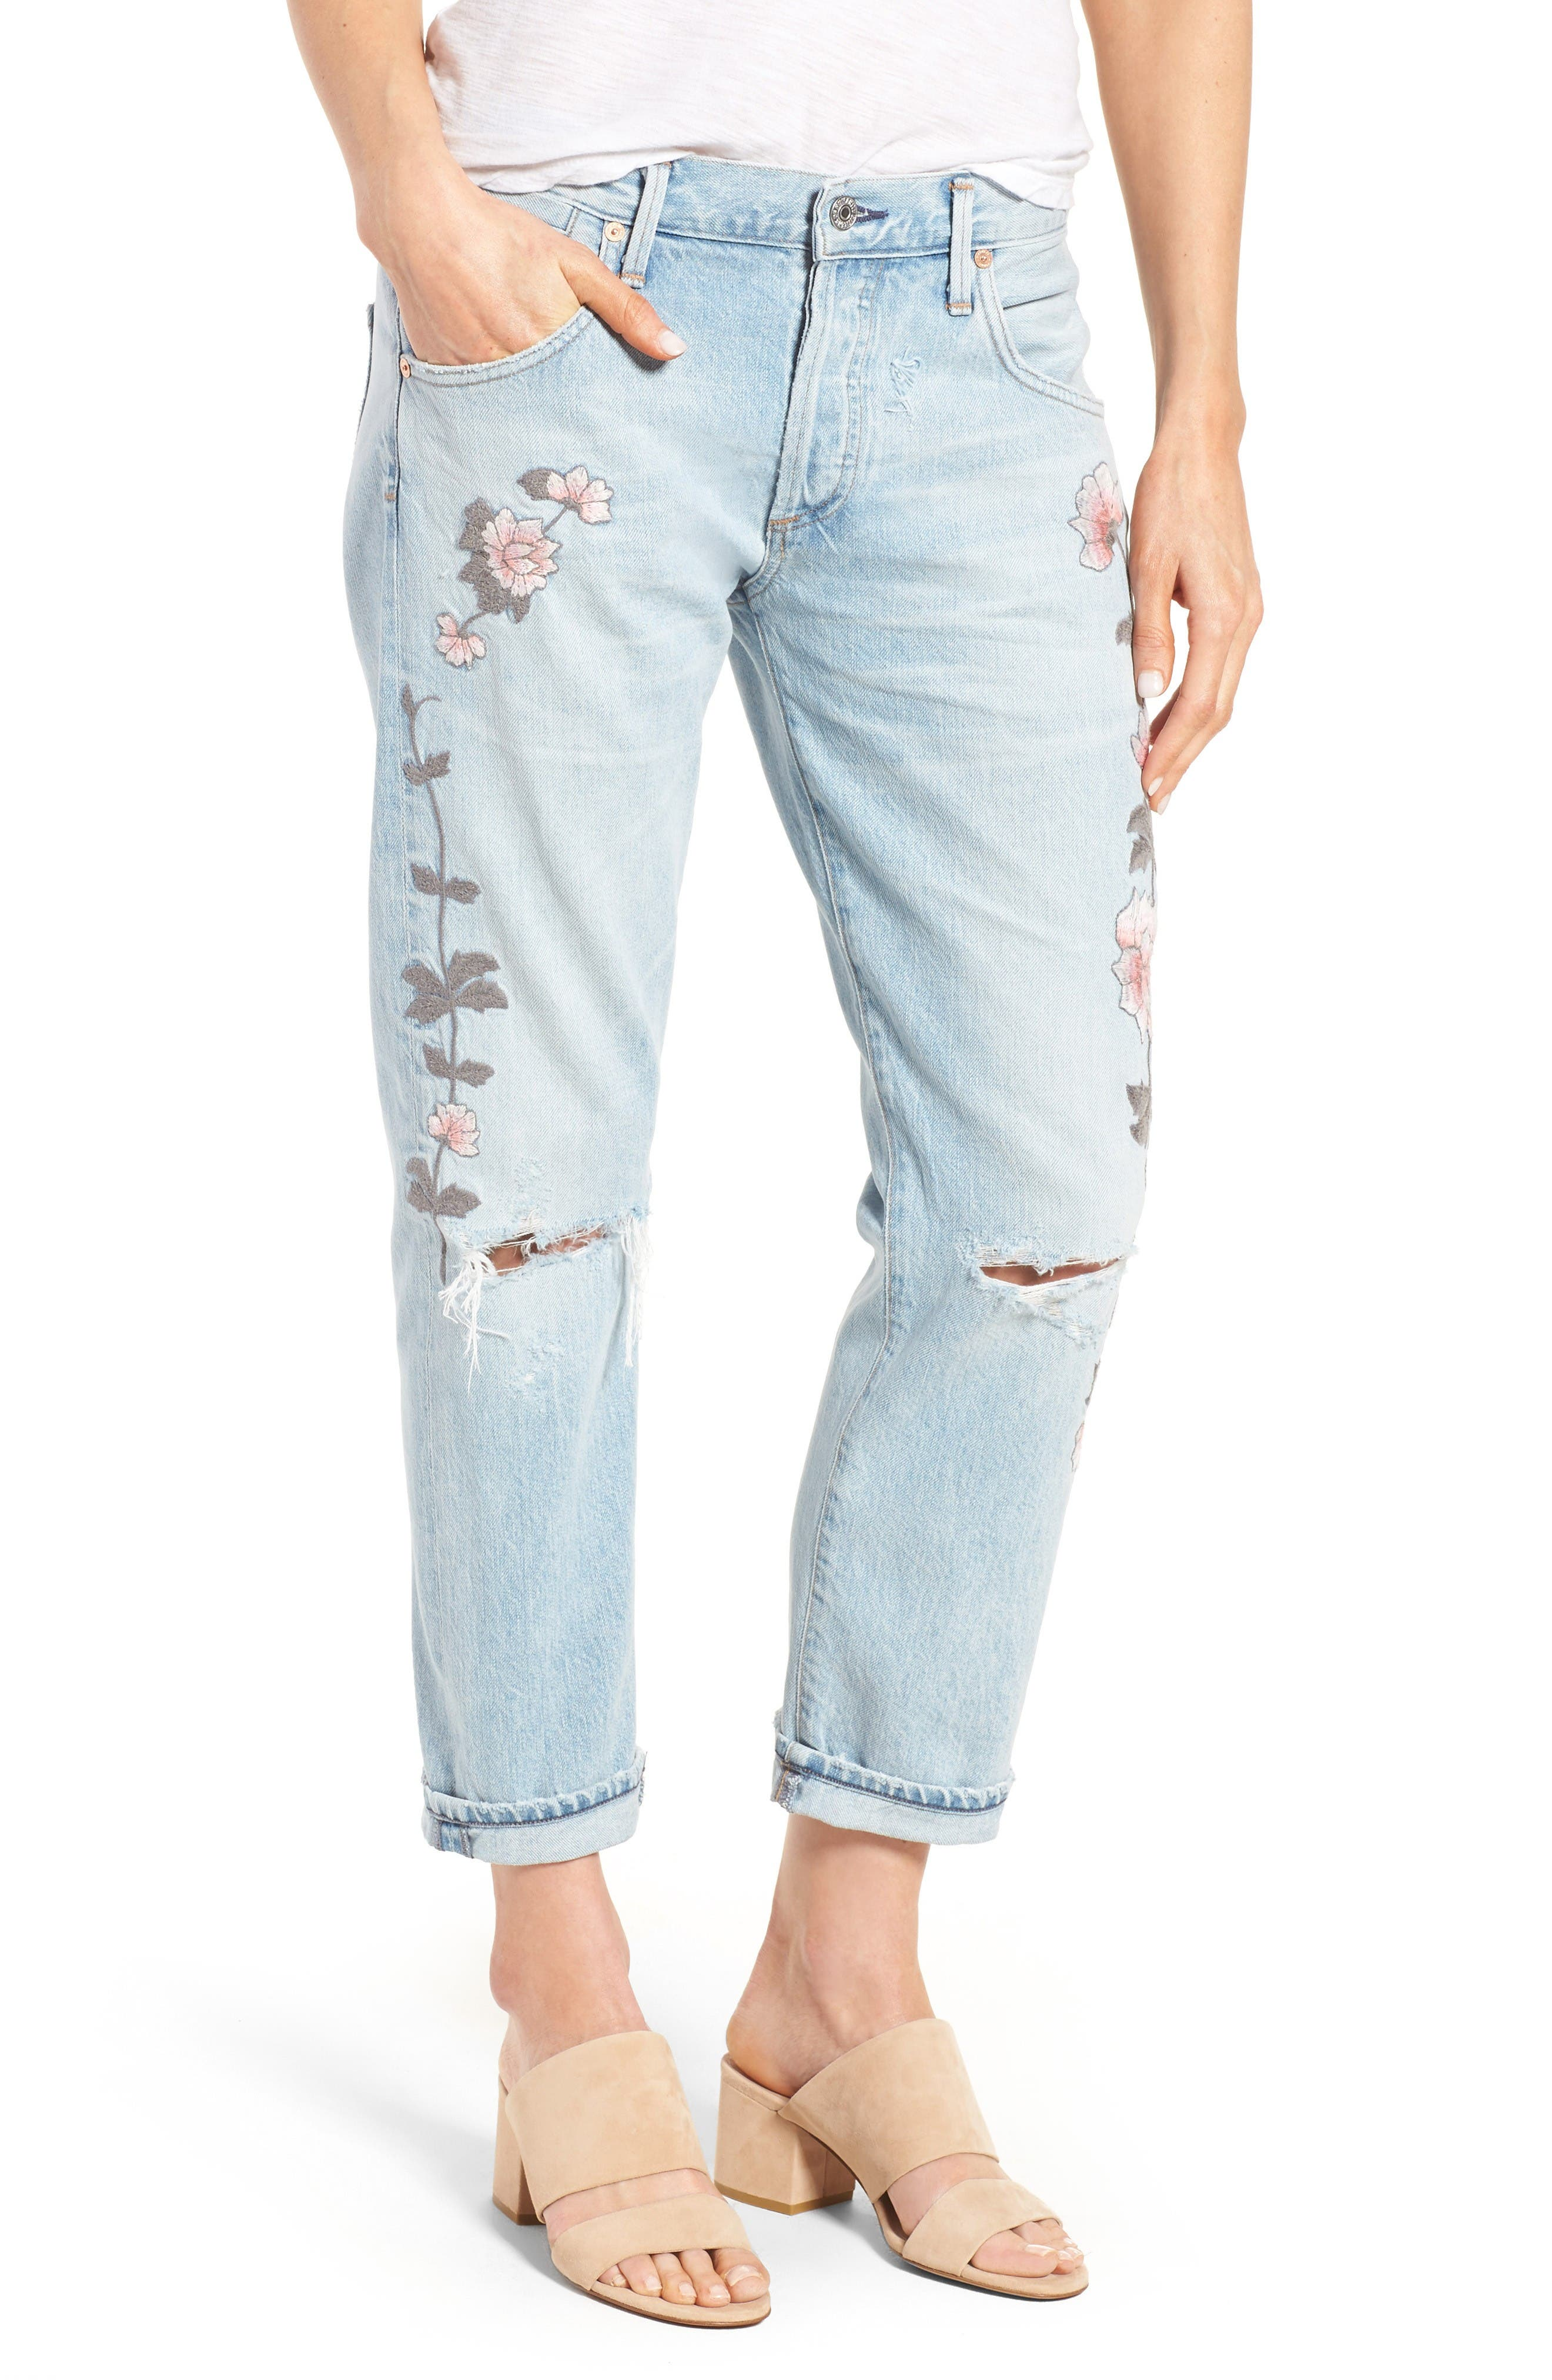 Emerson Slim Boyfriend Jeans,                         Main,                         color, Distressed Rock On Roses